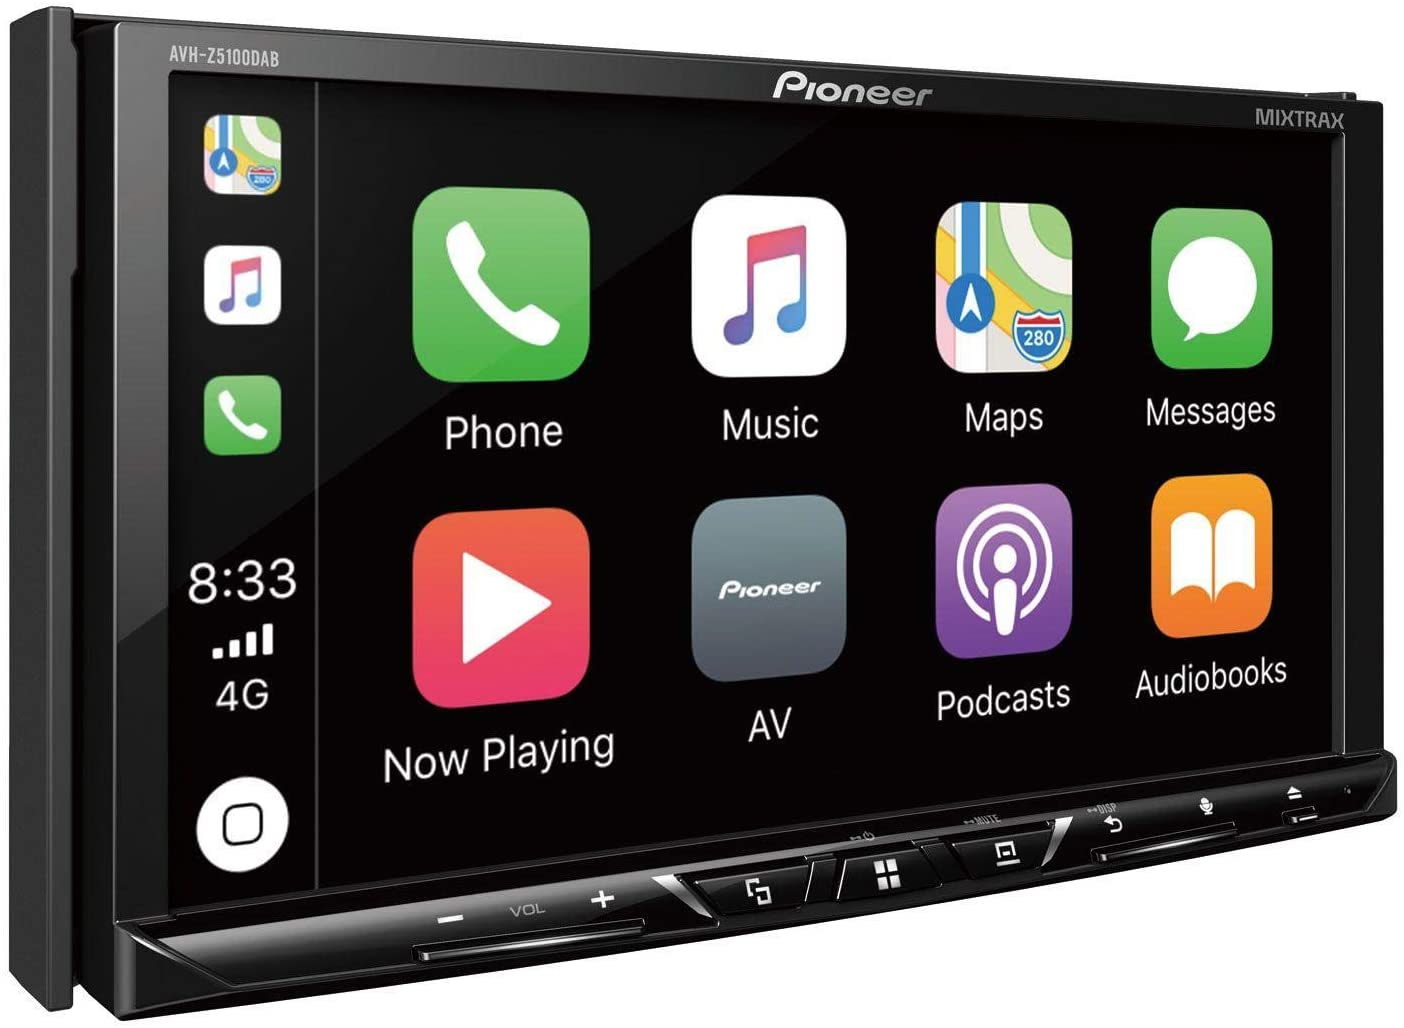 Pioneer Parking Brake Bypass Wiring Diagram Luxury Parking Brake Relay Best Brake Of Pioneer Parking Brake Bypass Wiring Diagram likewise Appradiodigital X further Android furthermore Jdfuhgnul Sl Ac Ss furthermore Img X. on pioneer appradio wiring 4